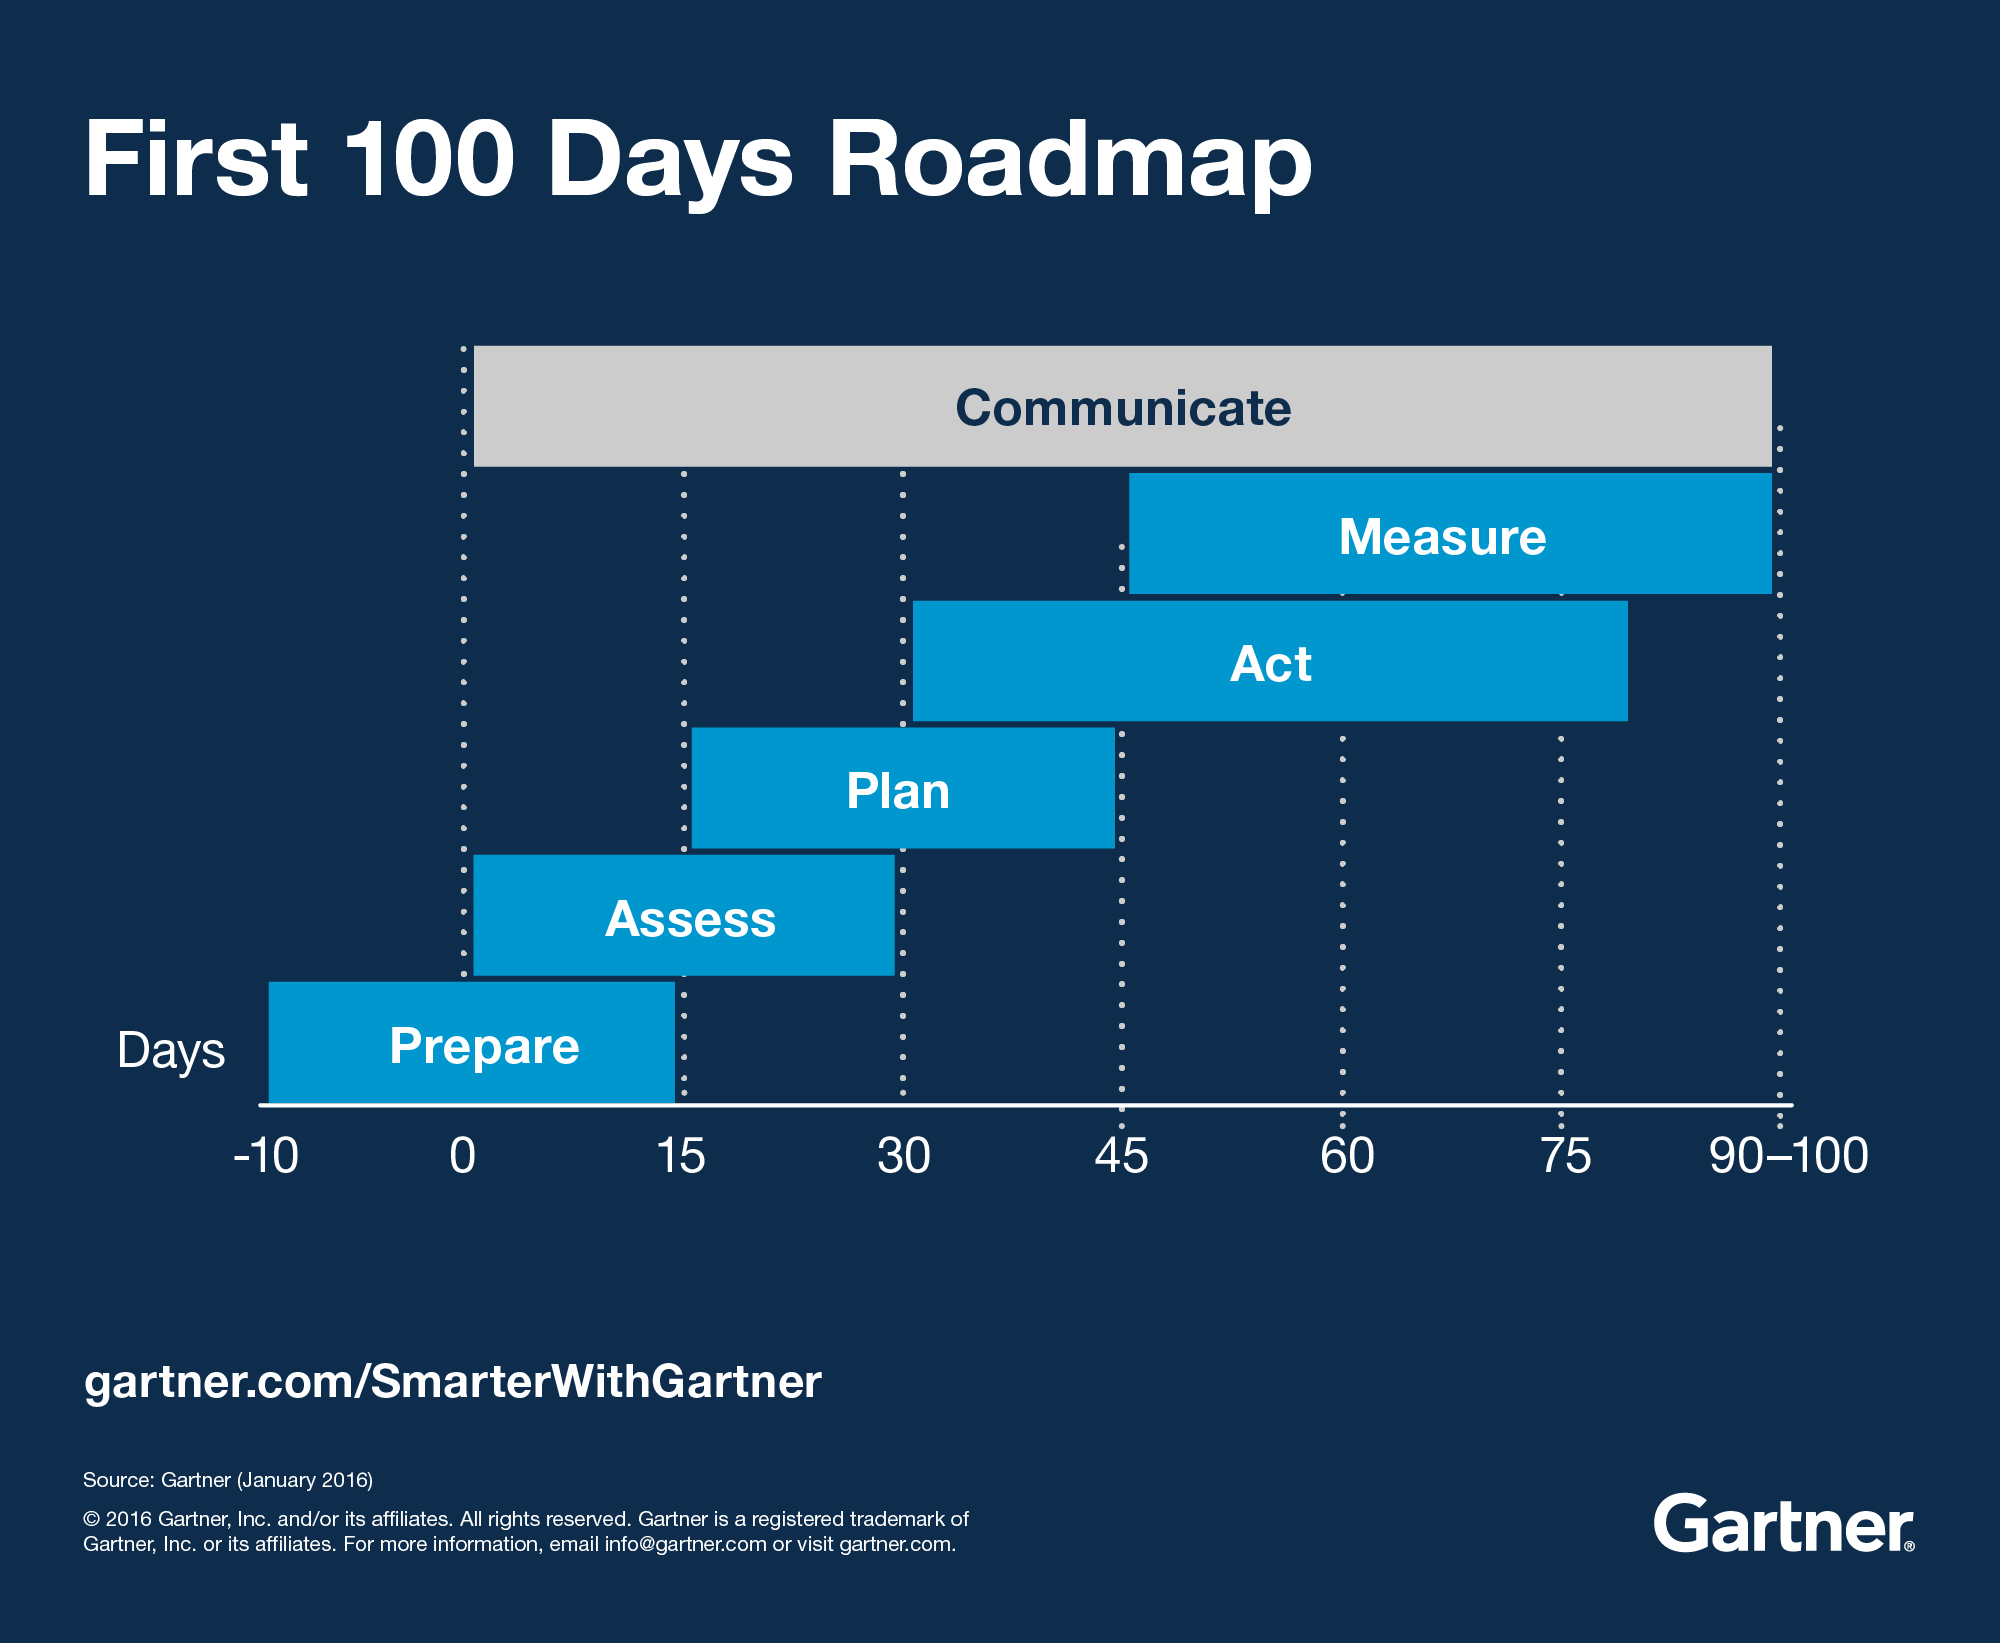 First 100 days roadmap for digital marketing leaders to